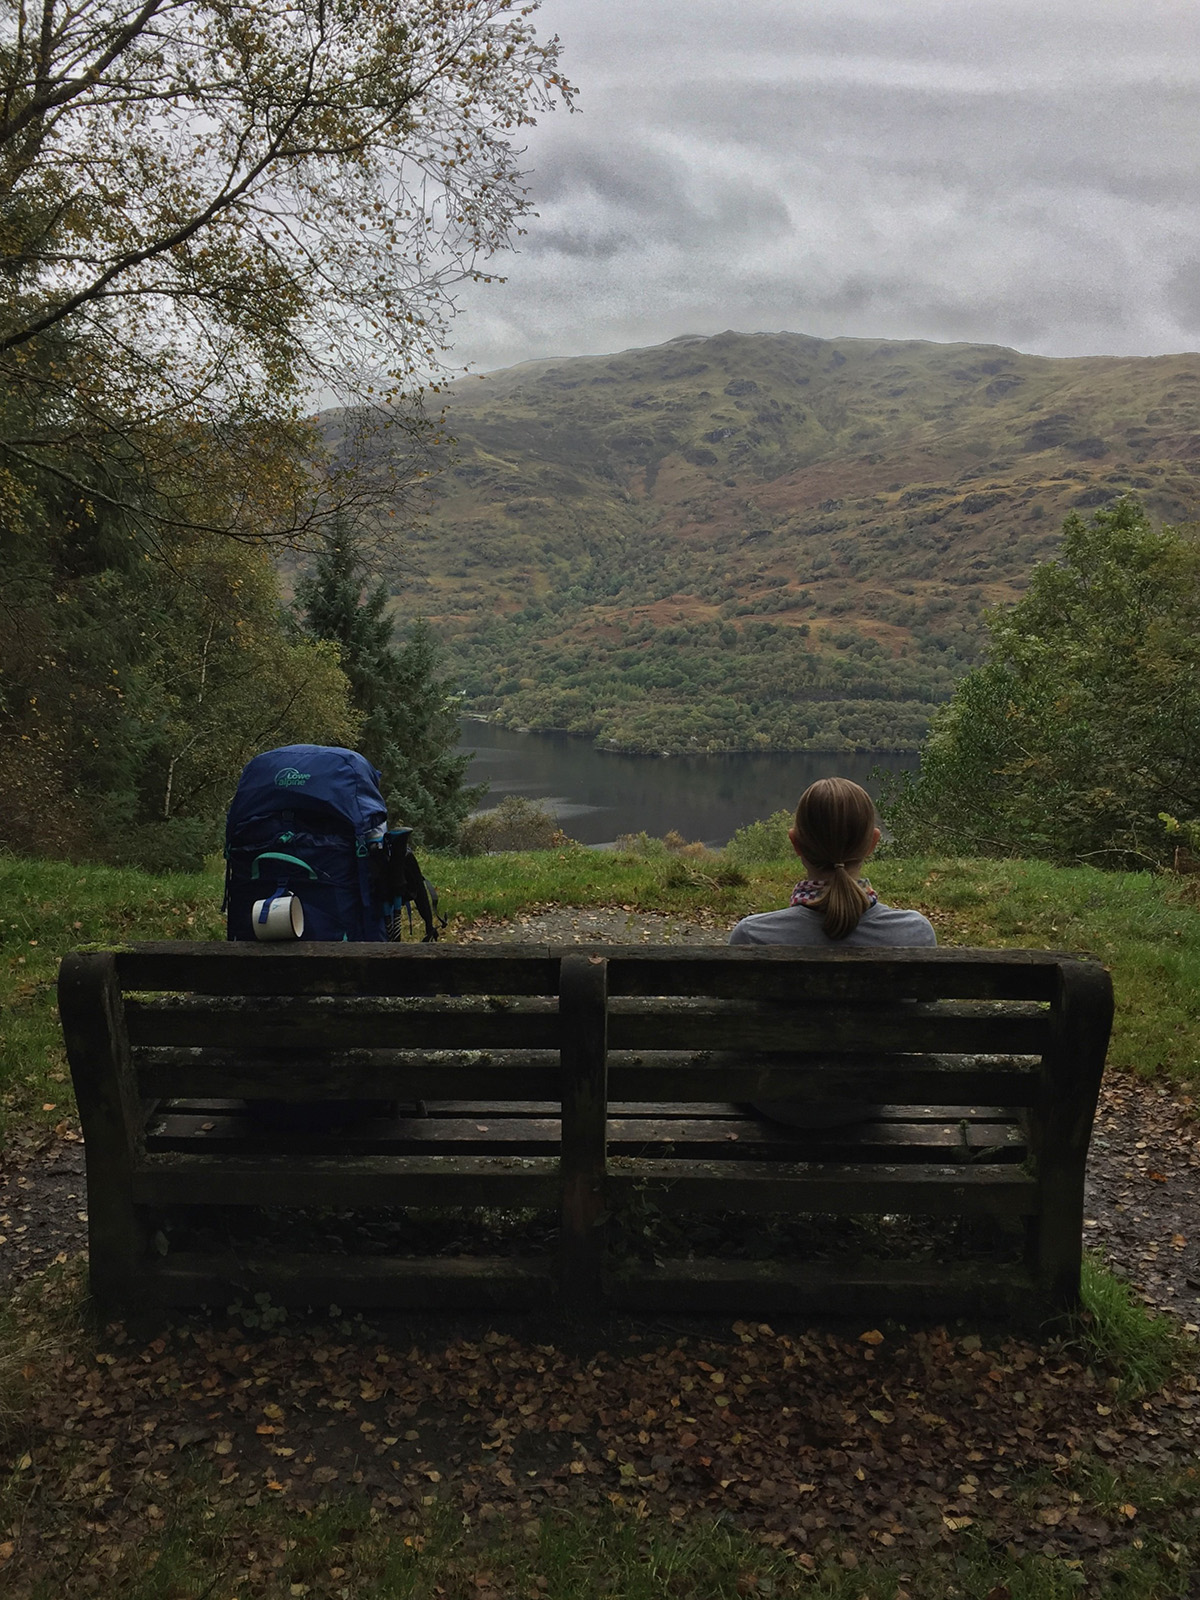 WHY THE WEST HIGHLAND WAY?